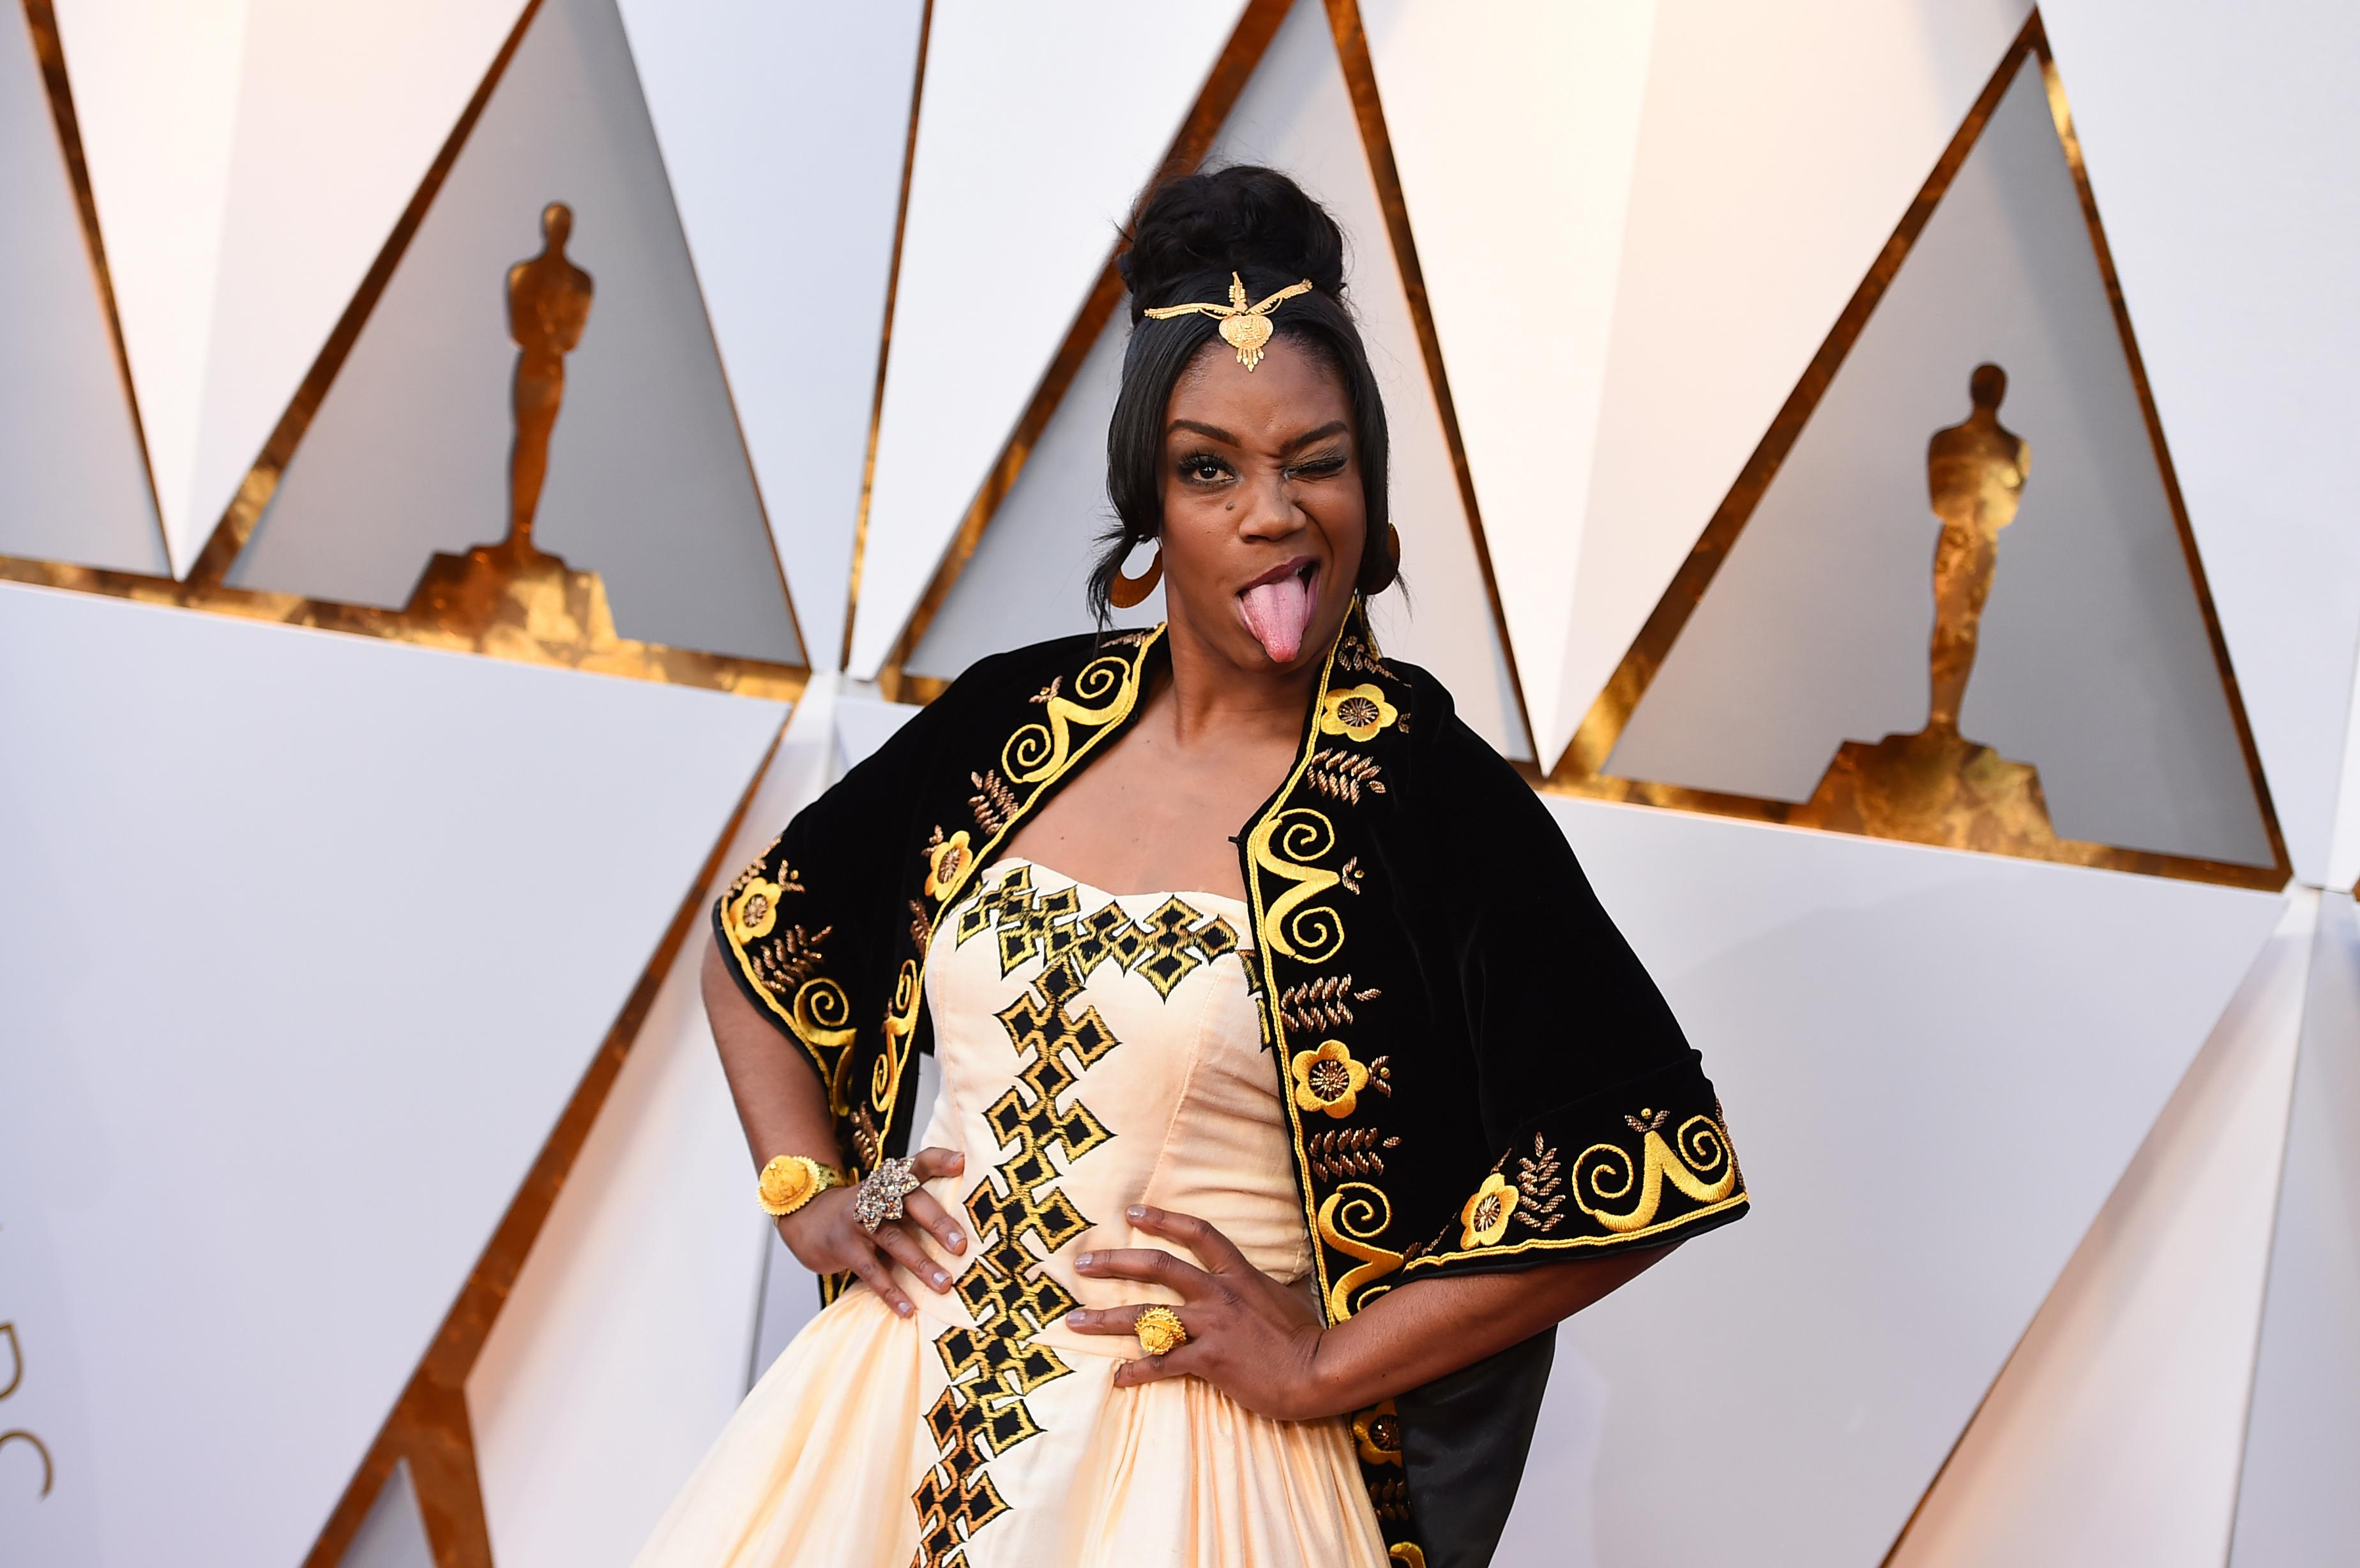 Tiffany Haddish arrives at the Oscars on Sunday, March 4, 2018, at the Dolby Theatre in Los Angeles. (Photo by Jordan Strauss/Invision/AP)